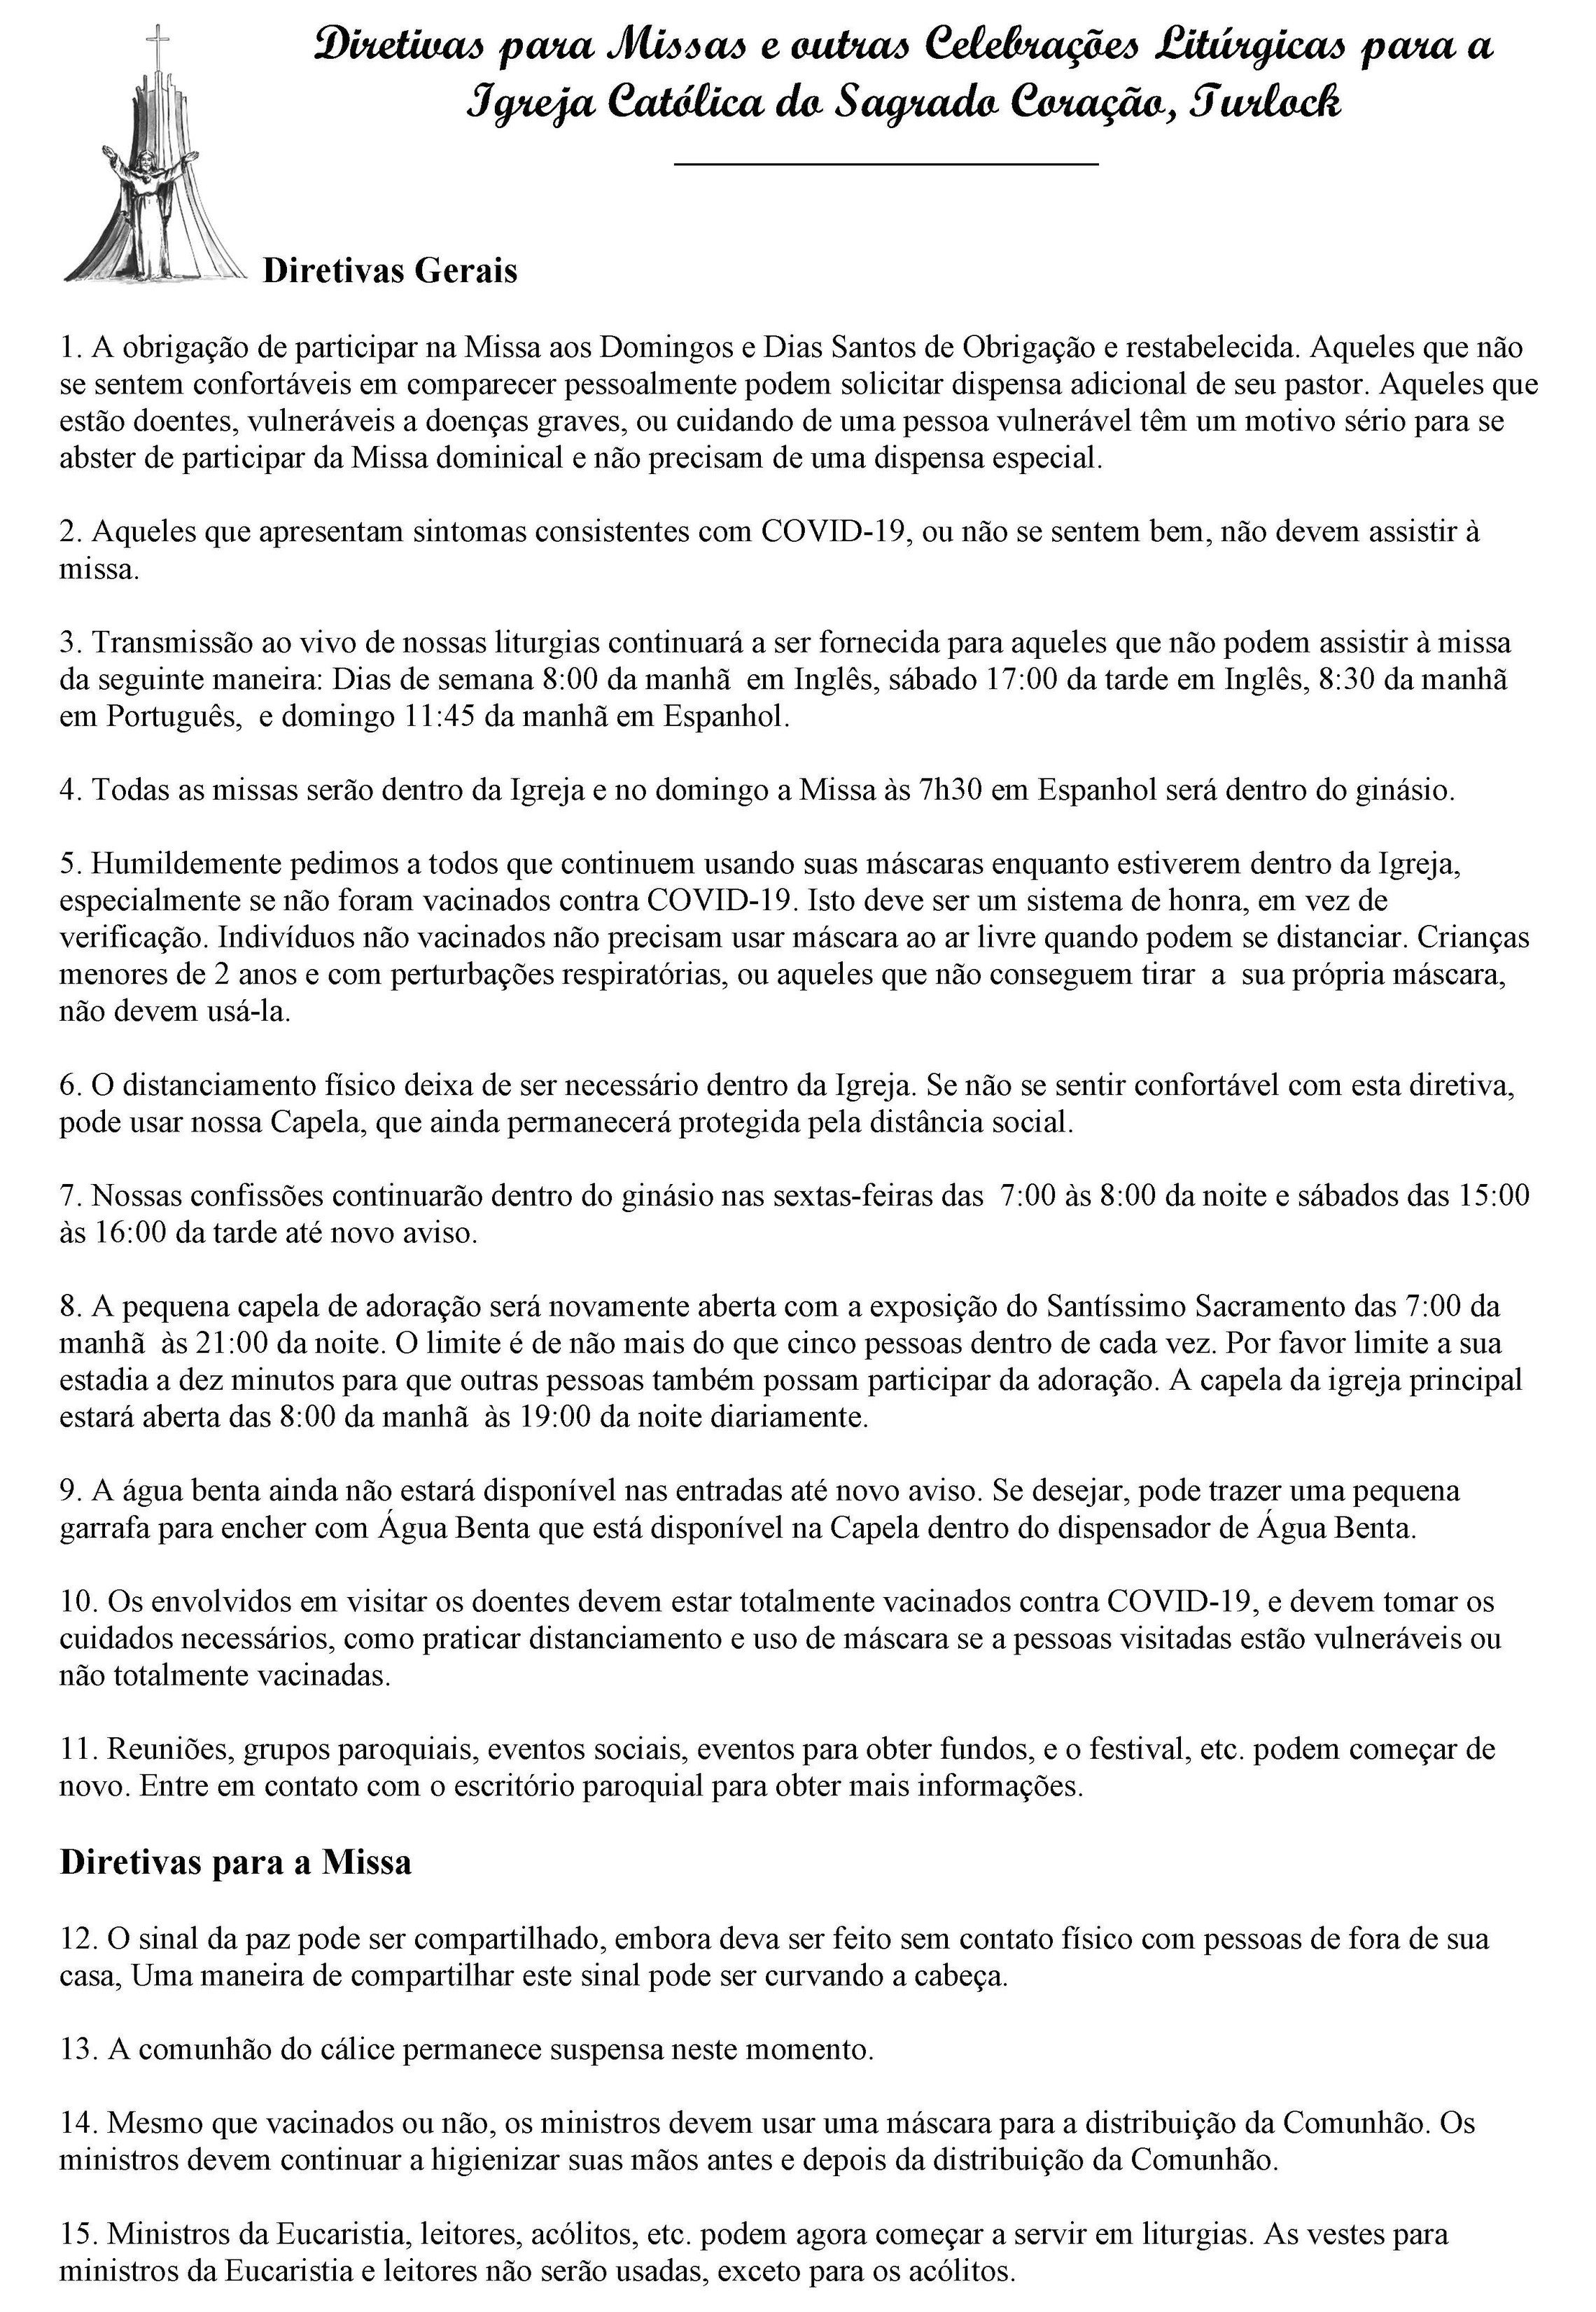 Directives In Portuguese 6 2021